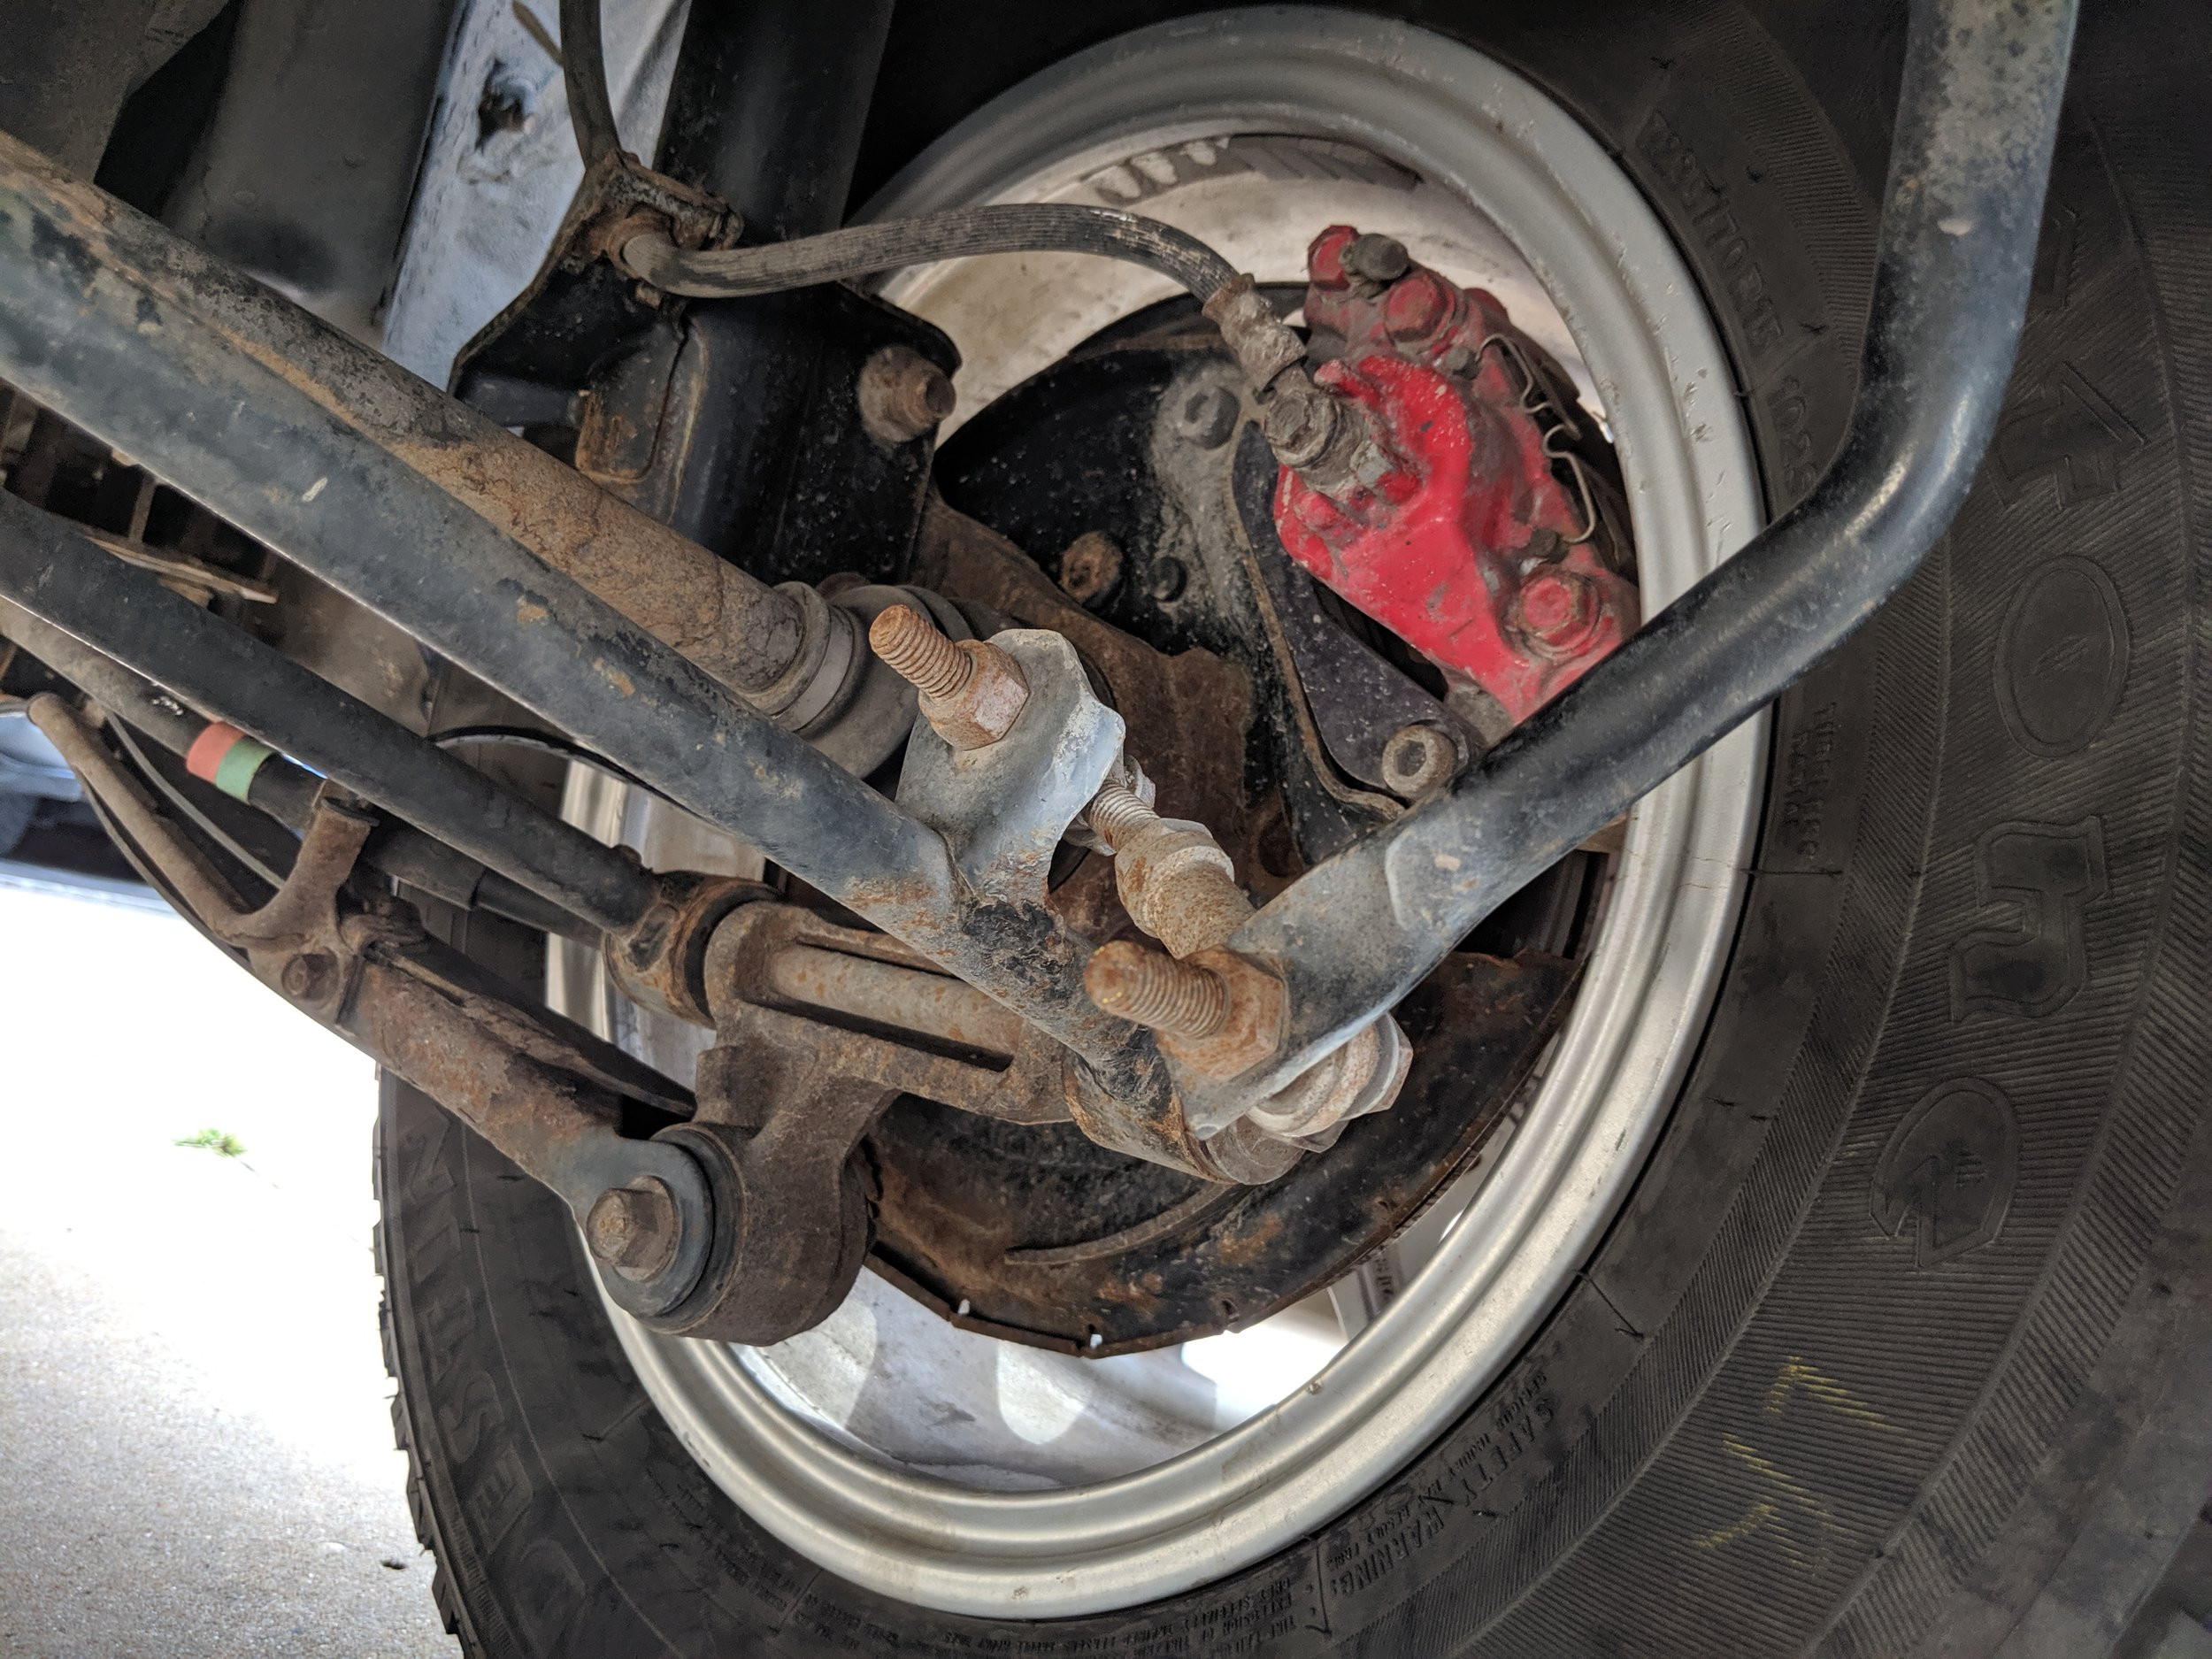 This was an often sight with these links, the sway bar would end up in this position. Note the corrosion too.